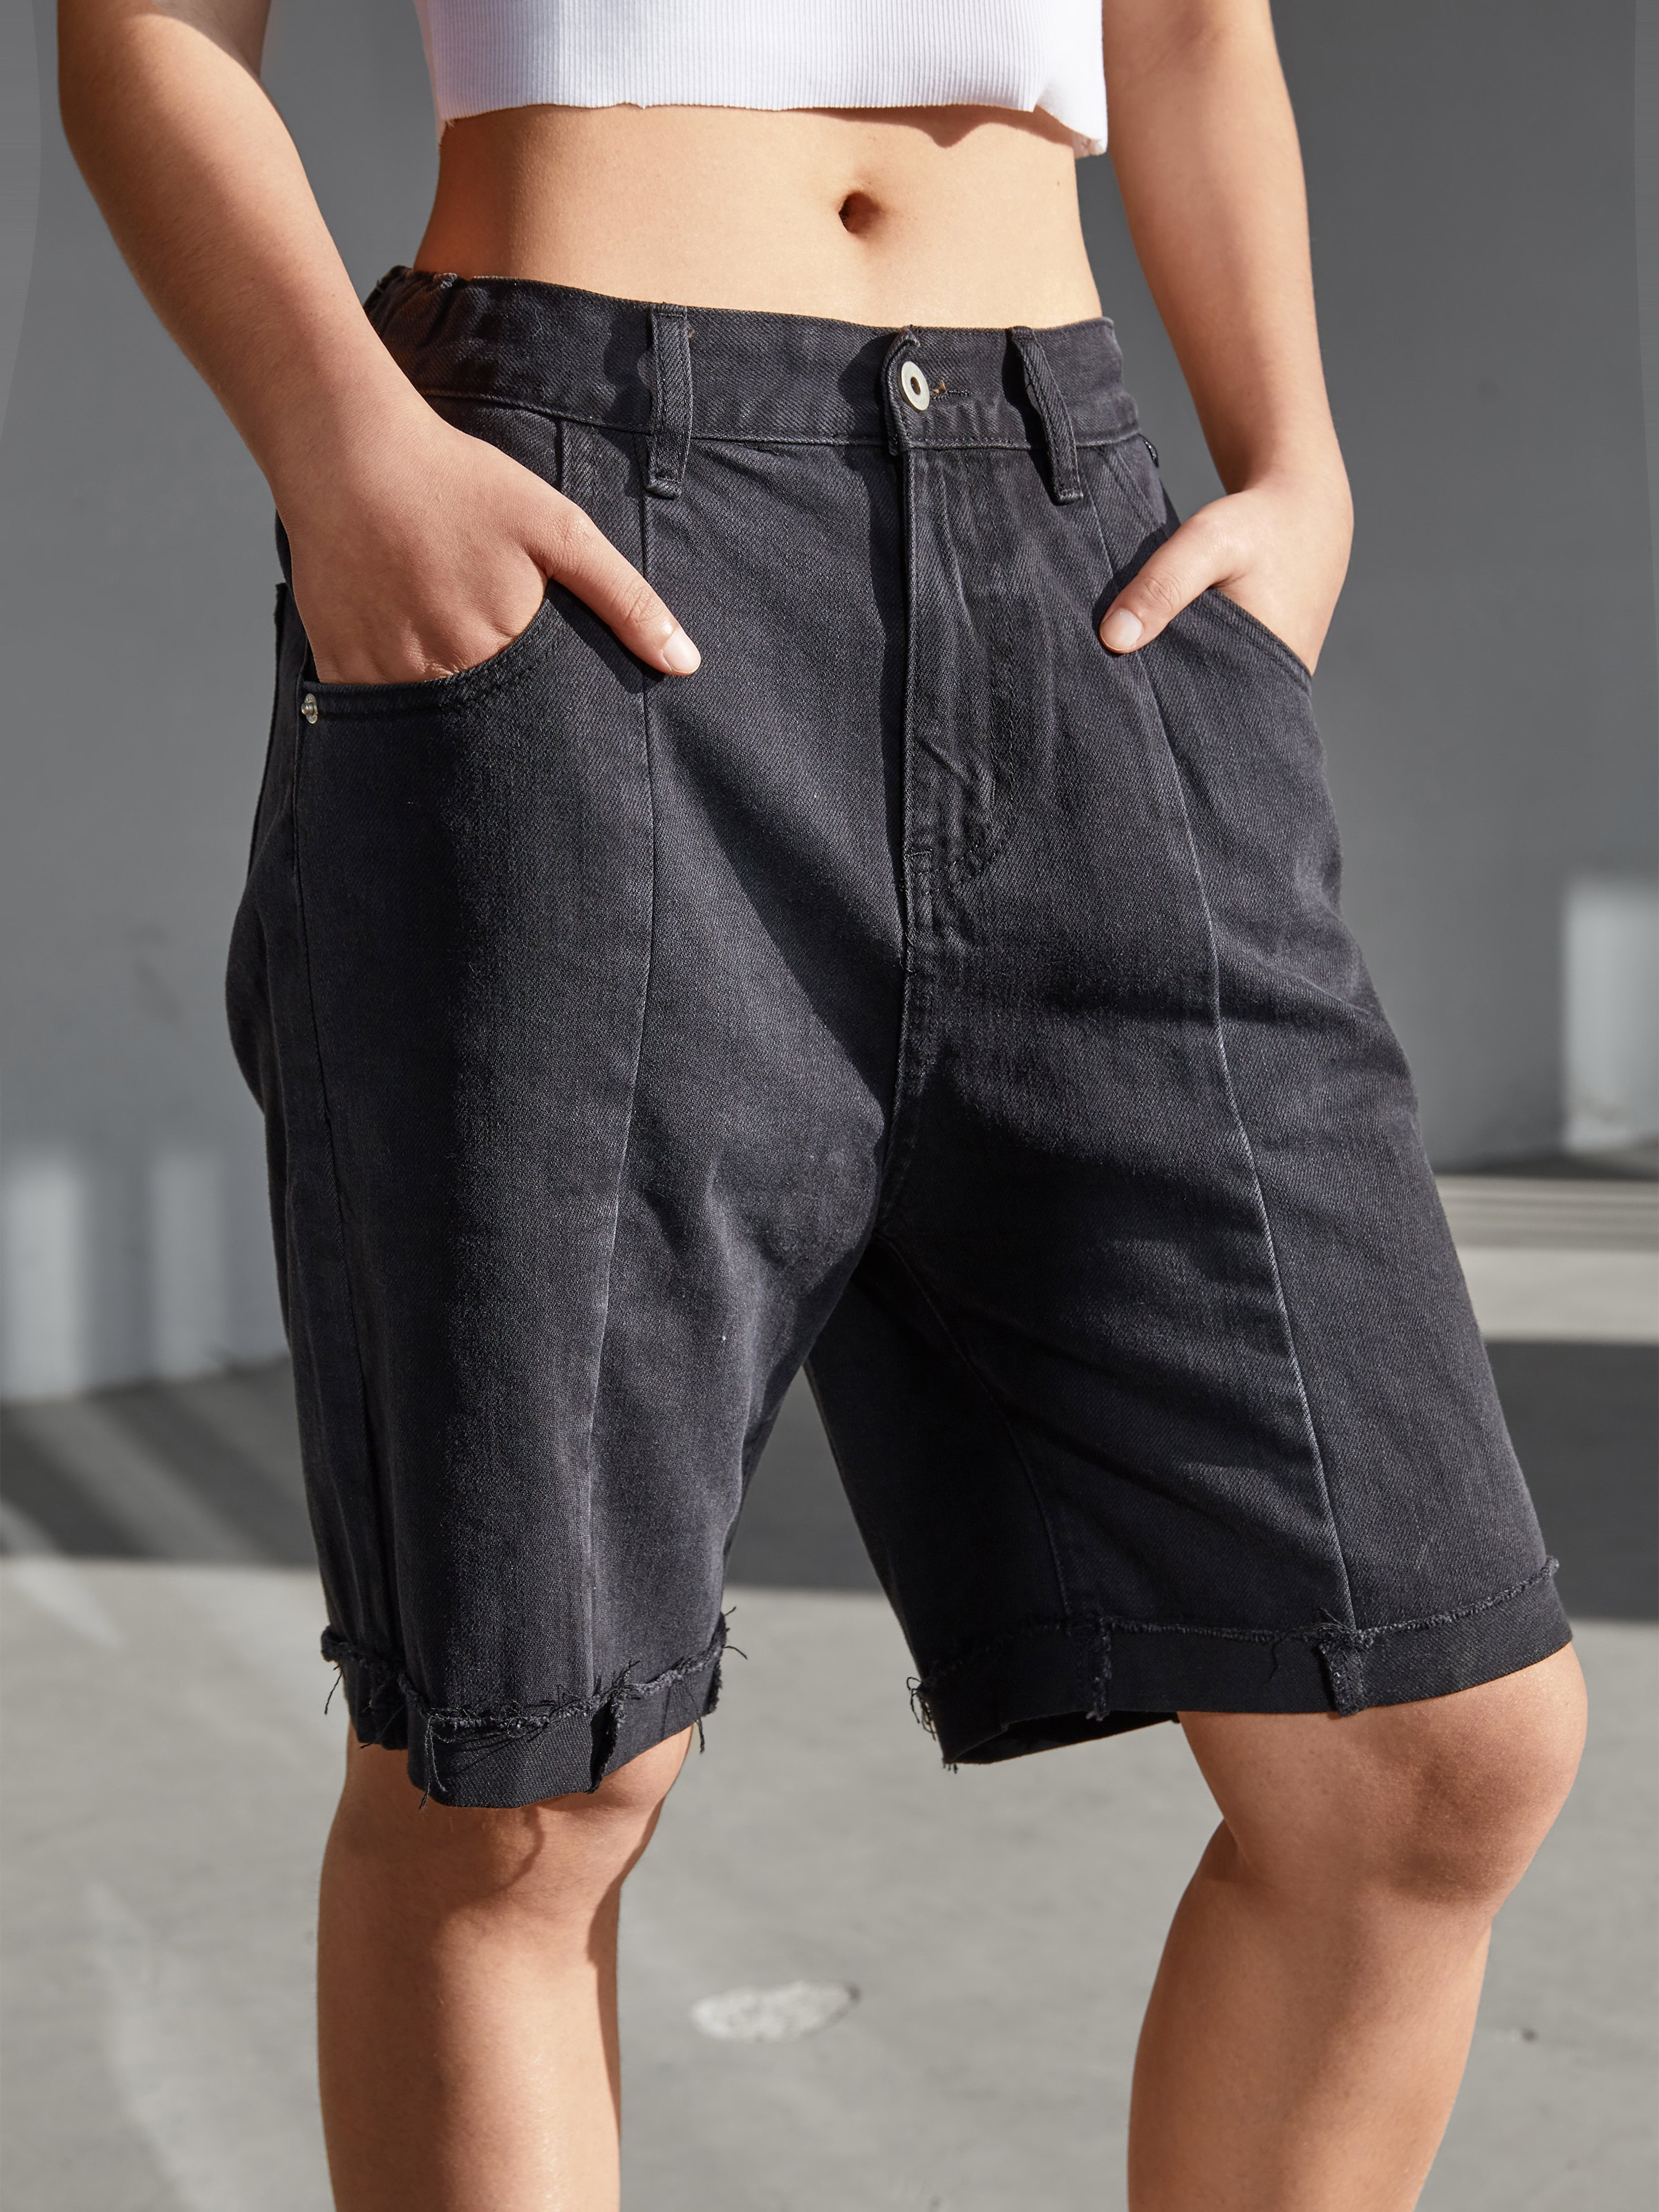 Splice High Waist Denim Shorts - Black XL